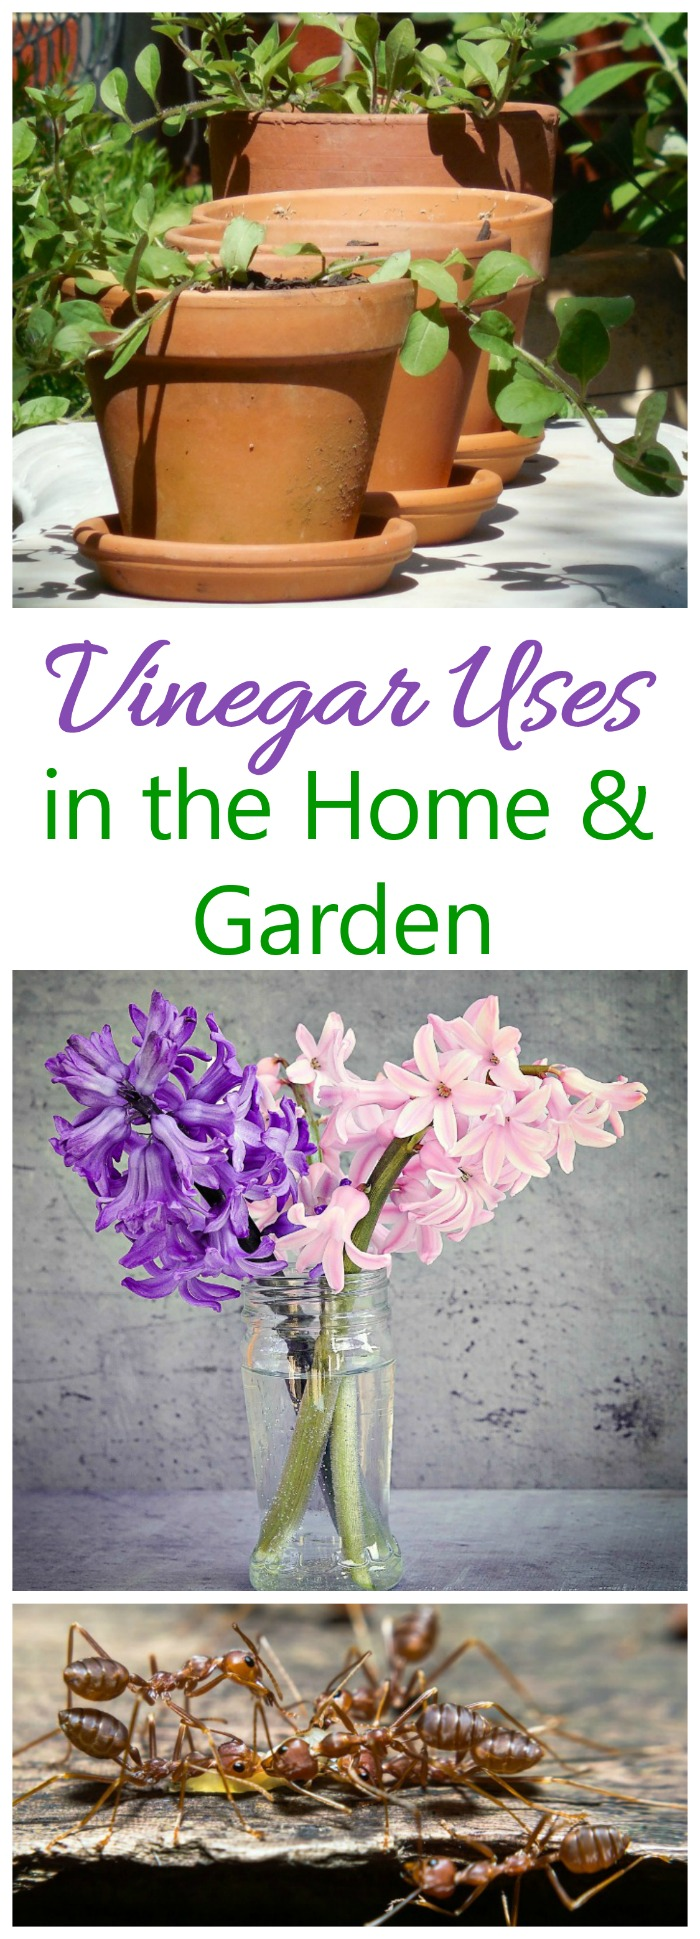 Vinegar Uses 50 Tried Tested Ways To Use This Household Product